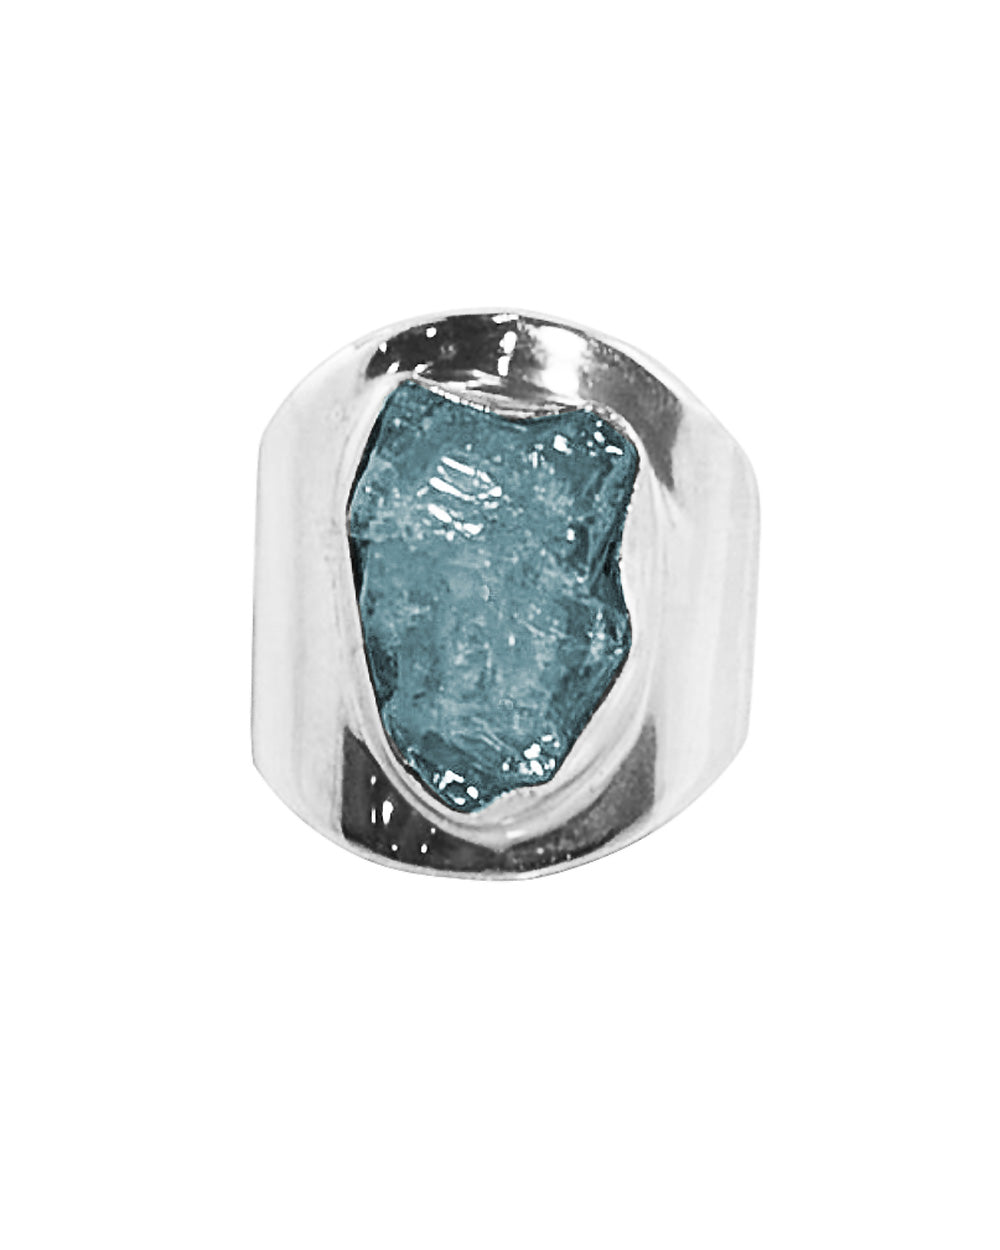 Raw Aquamarine Crystal Statement Pinky Ring in Sterling Silver